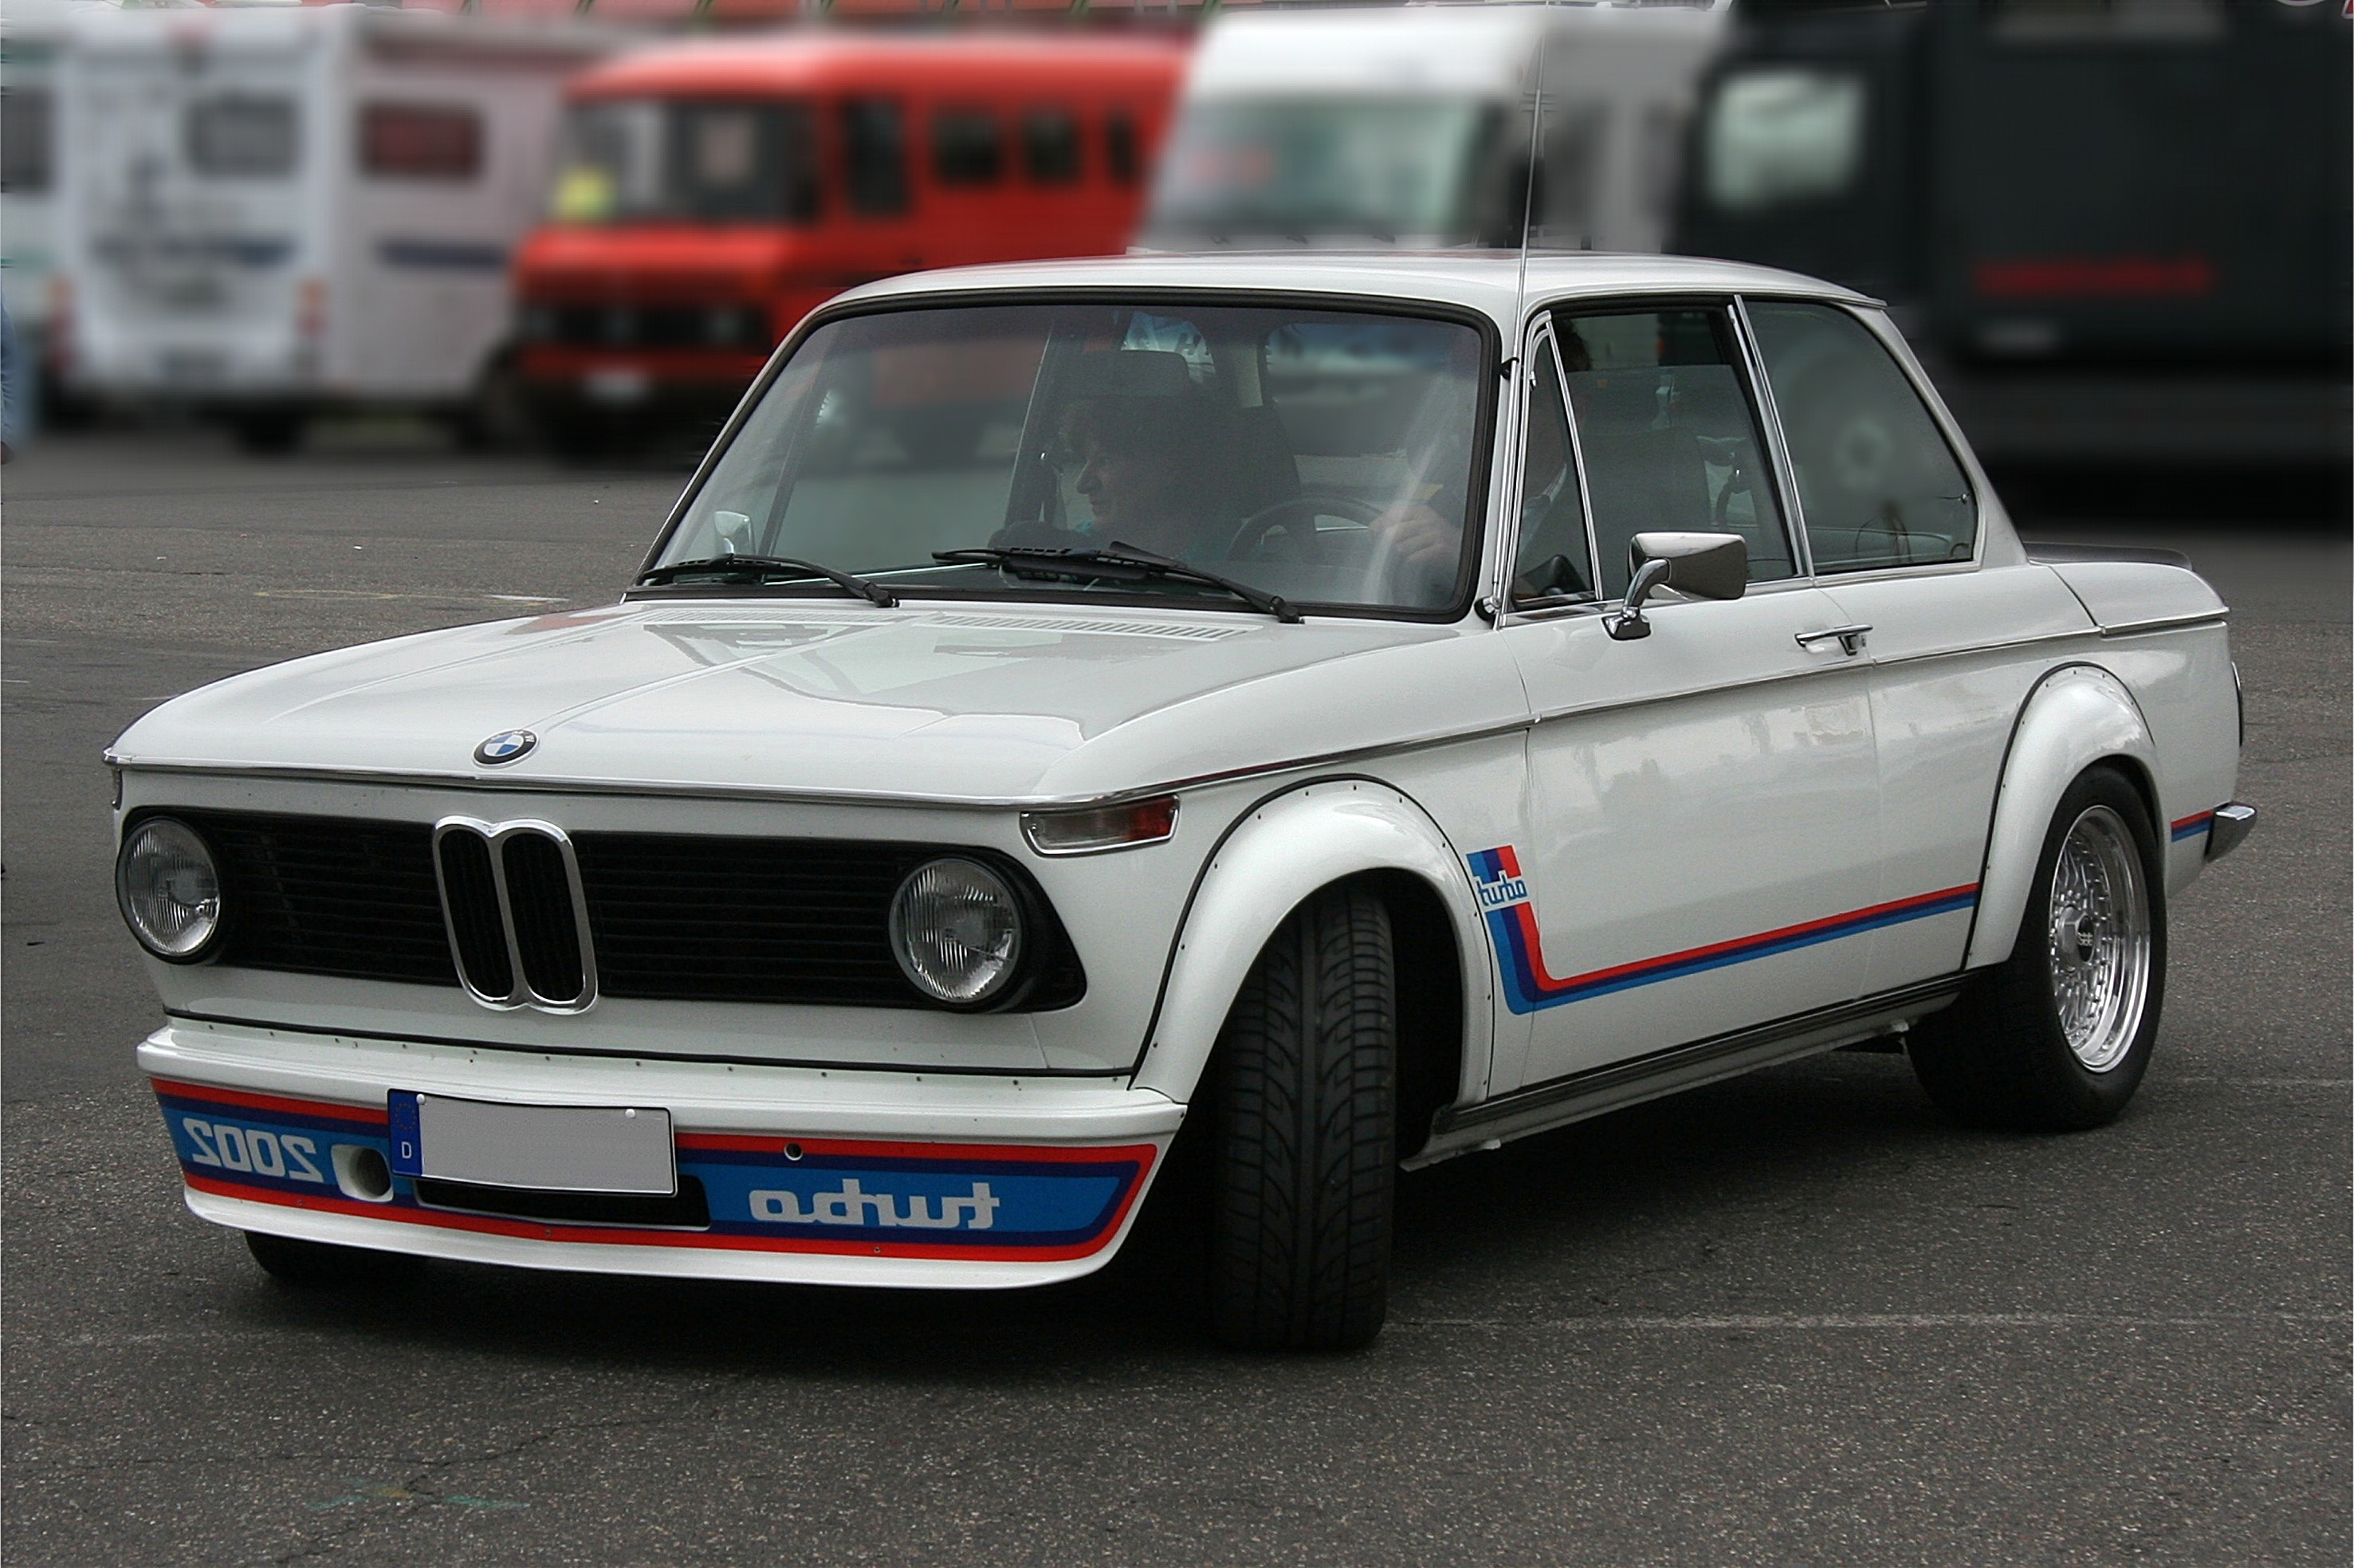 Photos Artistique de BMW ! ! ! - Page 5 _origin_Old-School-Bmw-pics-27